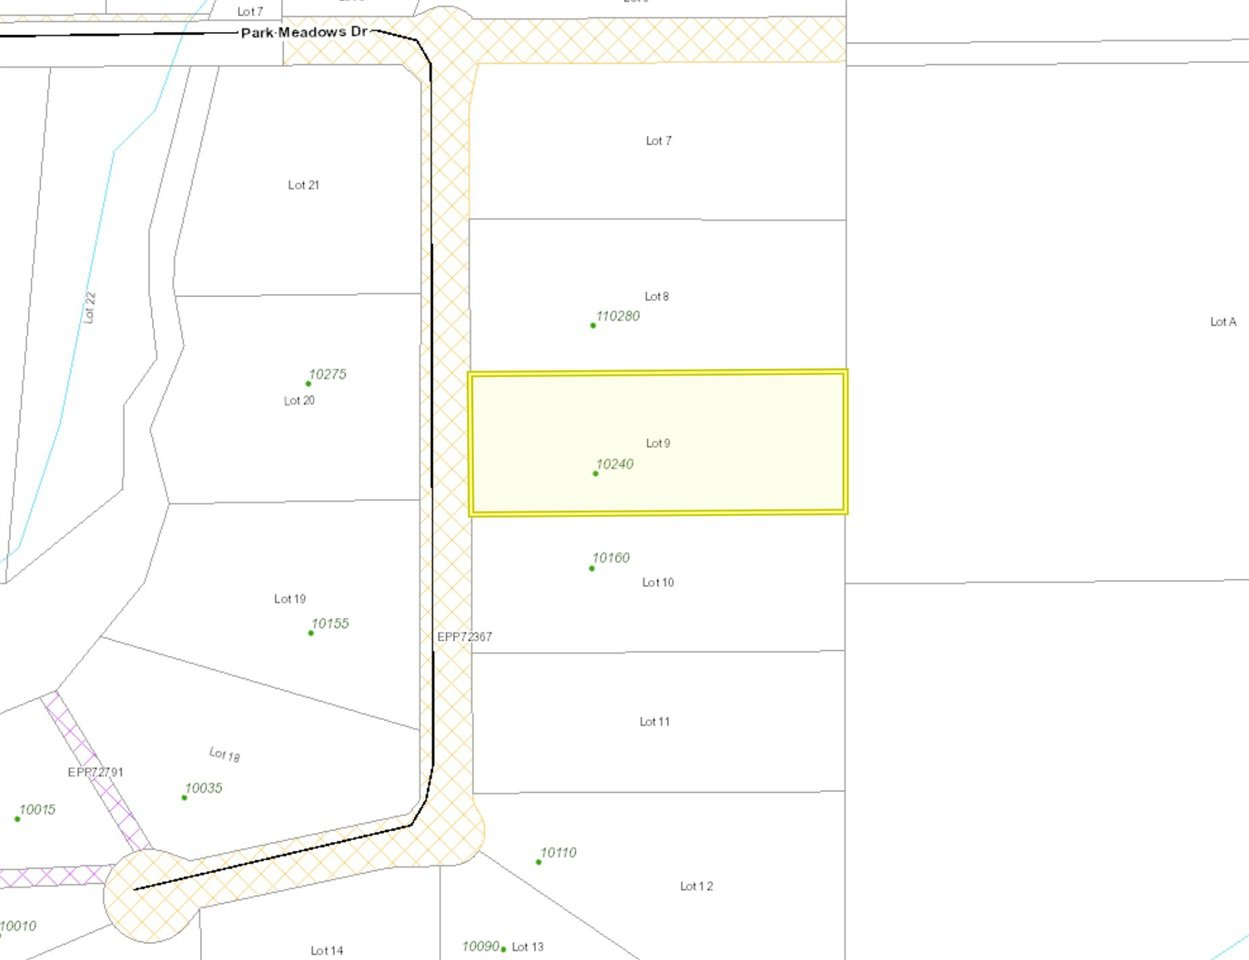 Main Photo: 10240 PARK MEADOWS Drive in Prince George: Beaverley Land for sale (PG Rural West (Zone 77))  : MLS®# R2464453